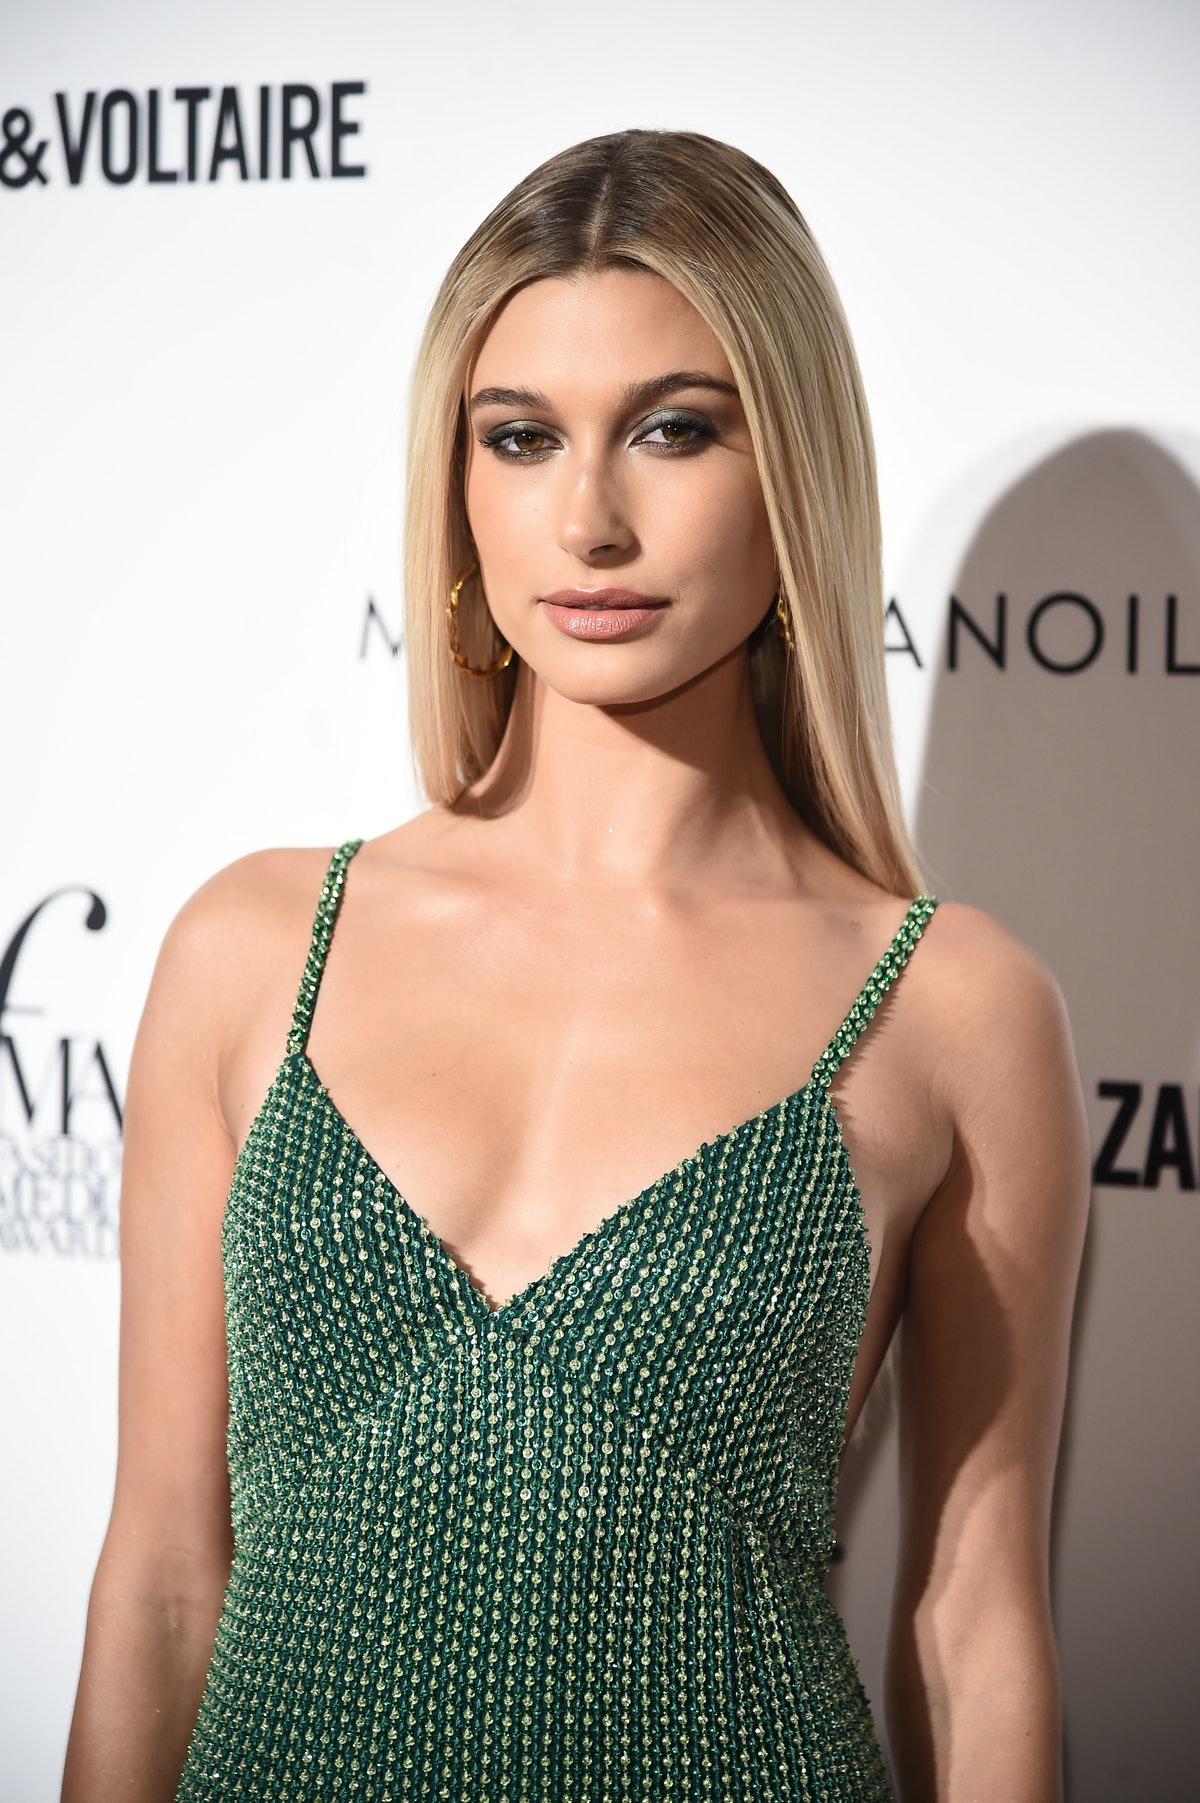 Hailey Baldwin's Approach To Dealing With Social Media Haters Is Filled With So Much Positivity